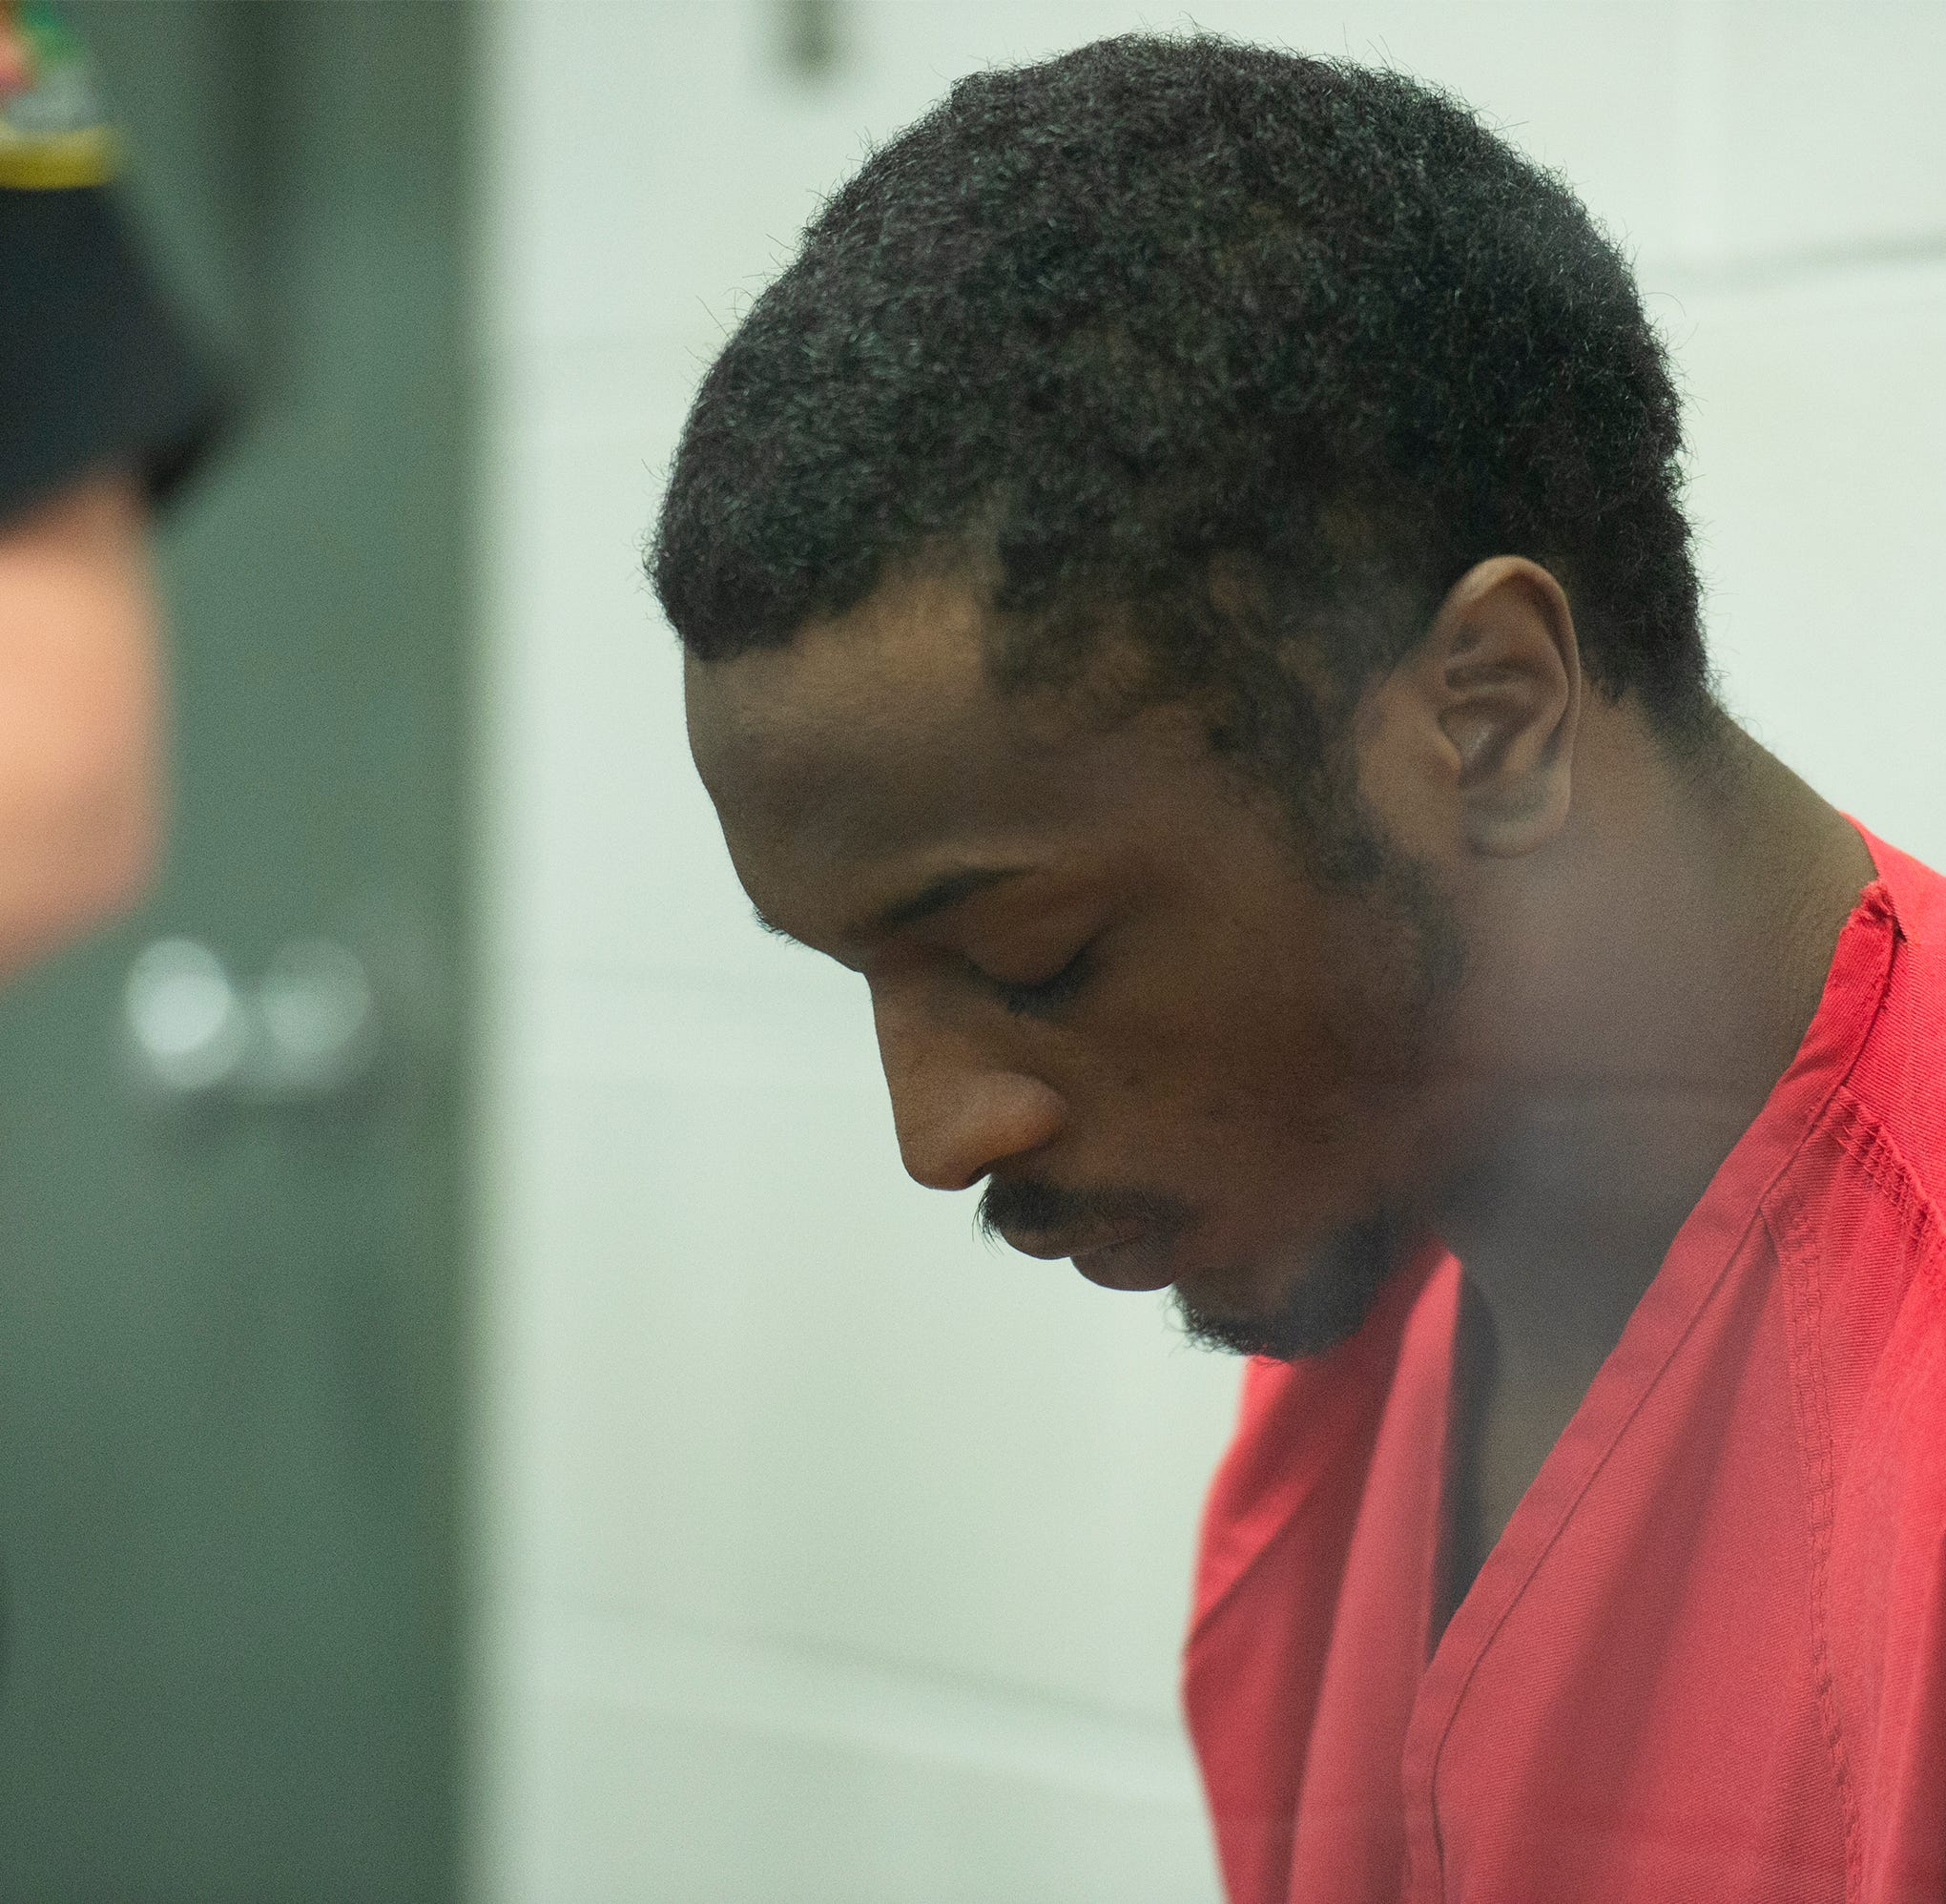 Greenville mom to murder suspect: My daughter was 'the only one who actually cared about you'